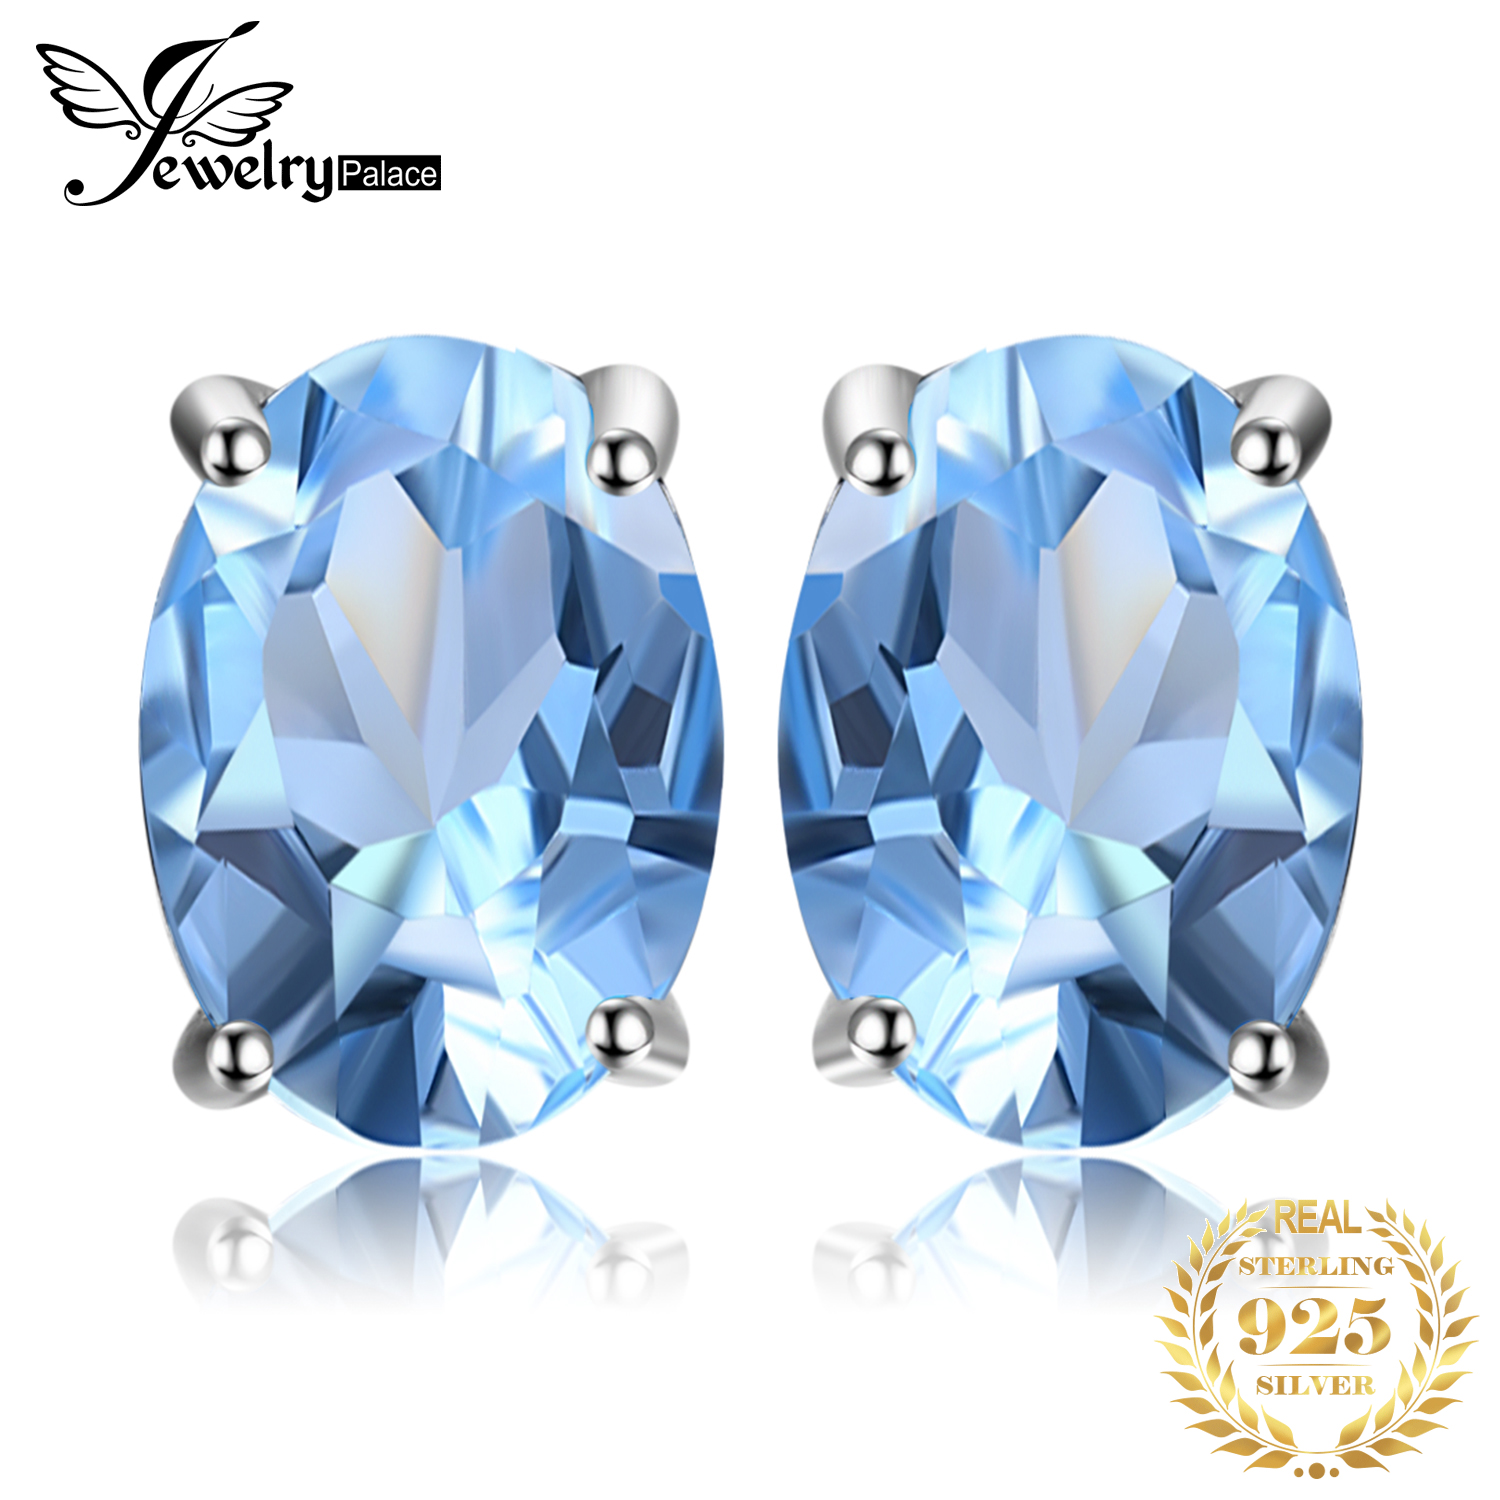 JewelryPalace 1.9ct Genuine Blue Topaz Stud Earrings 925 Sterling Silver Earrings For Women Korean Earings Fashion Jewelry 2020